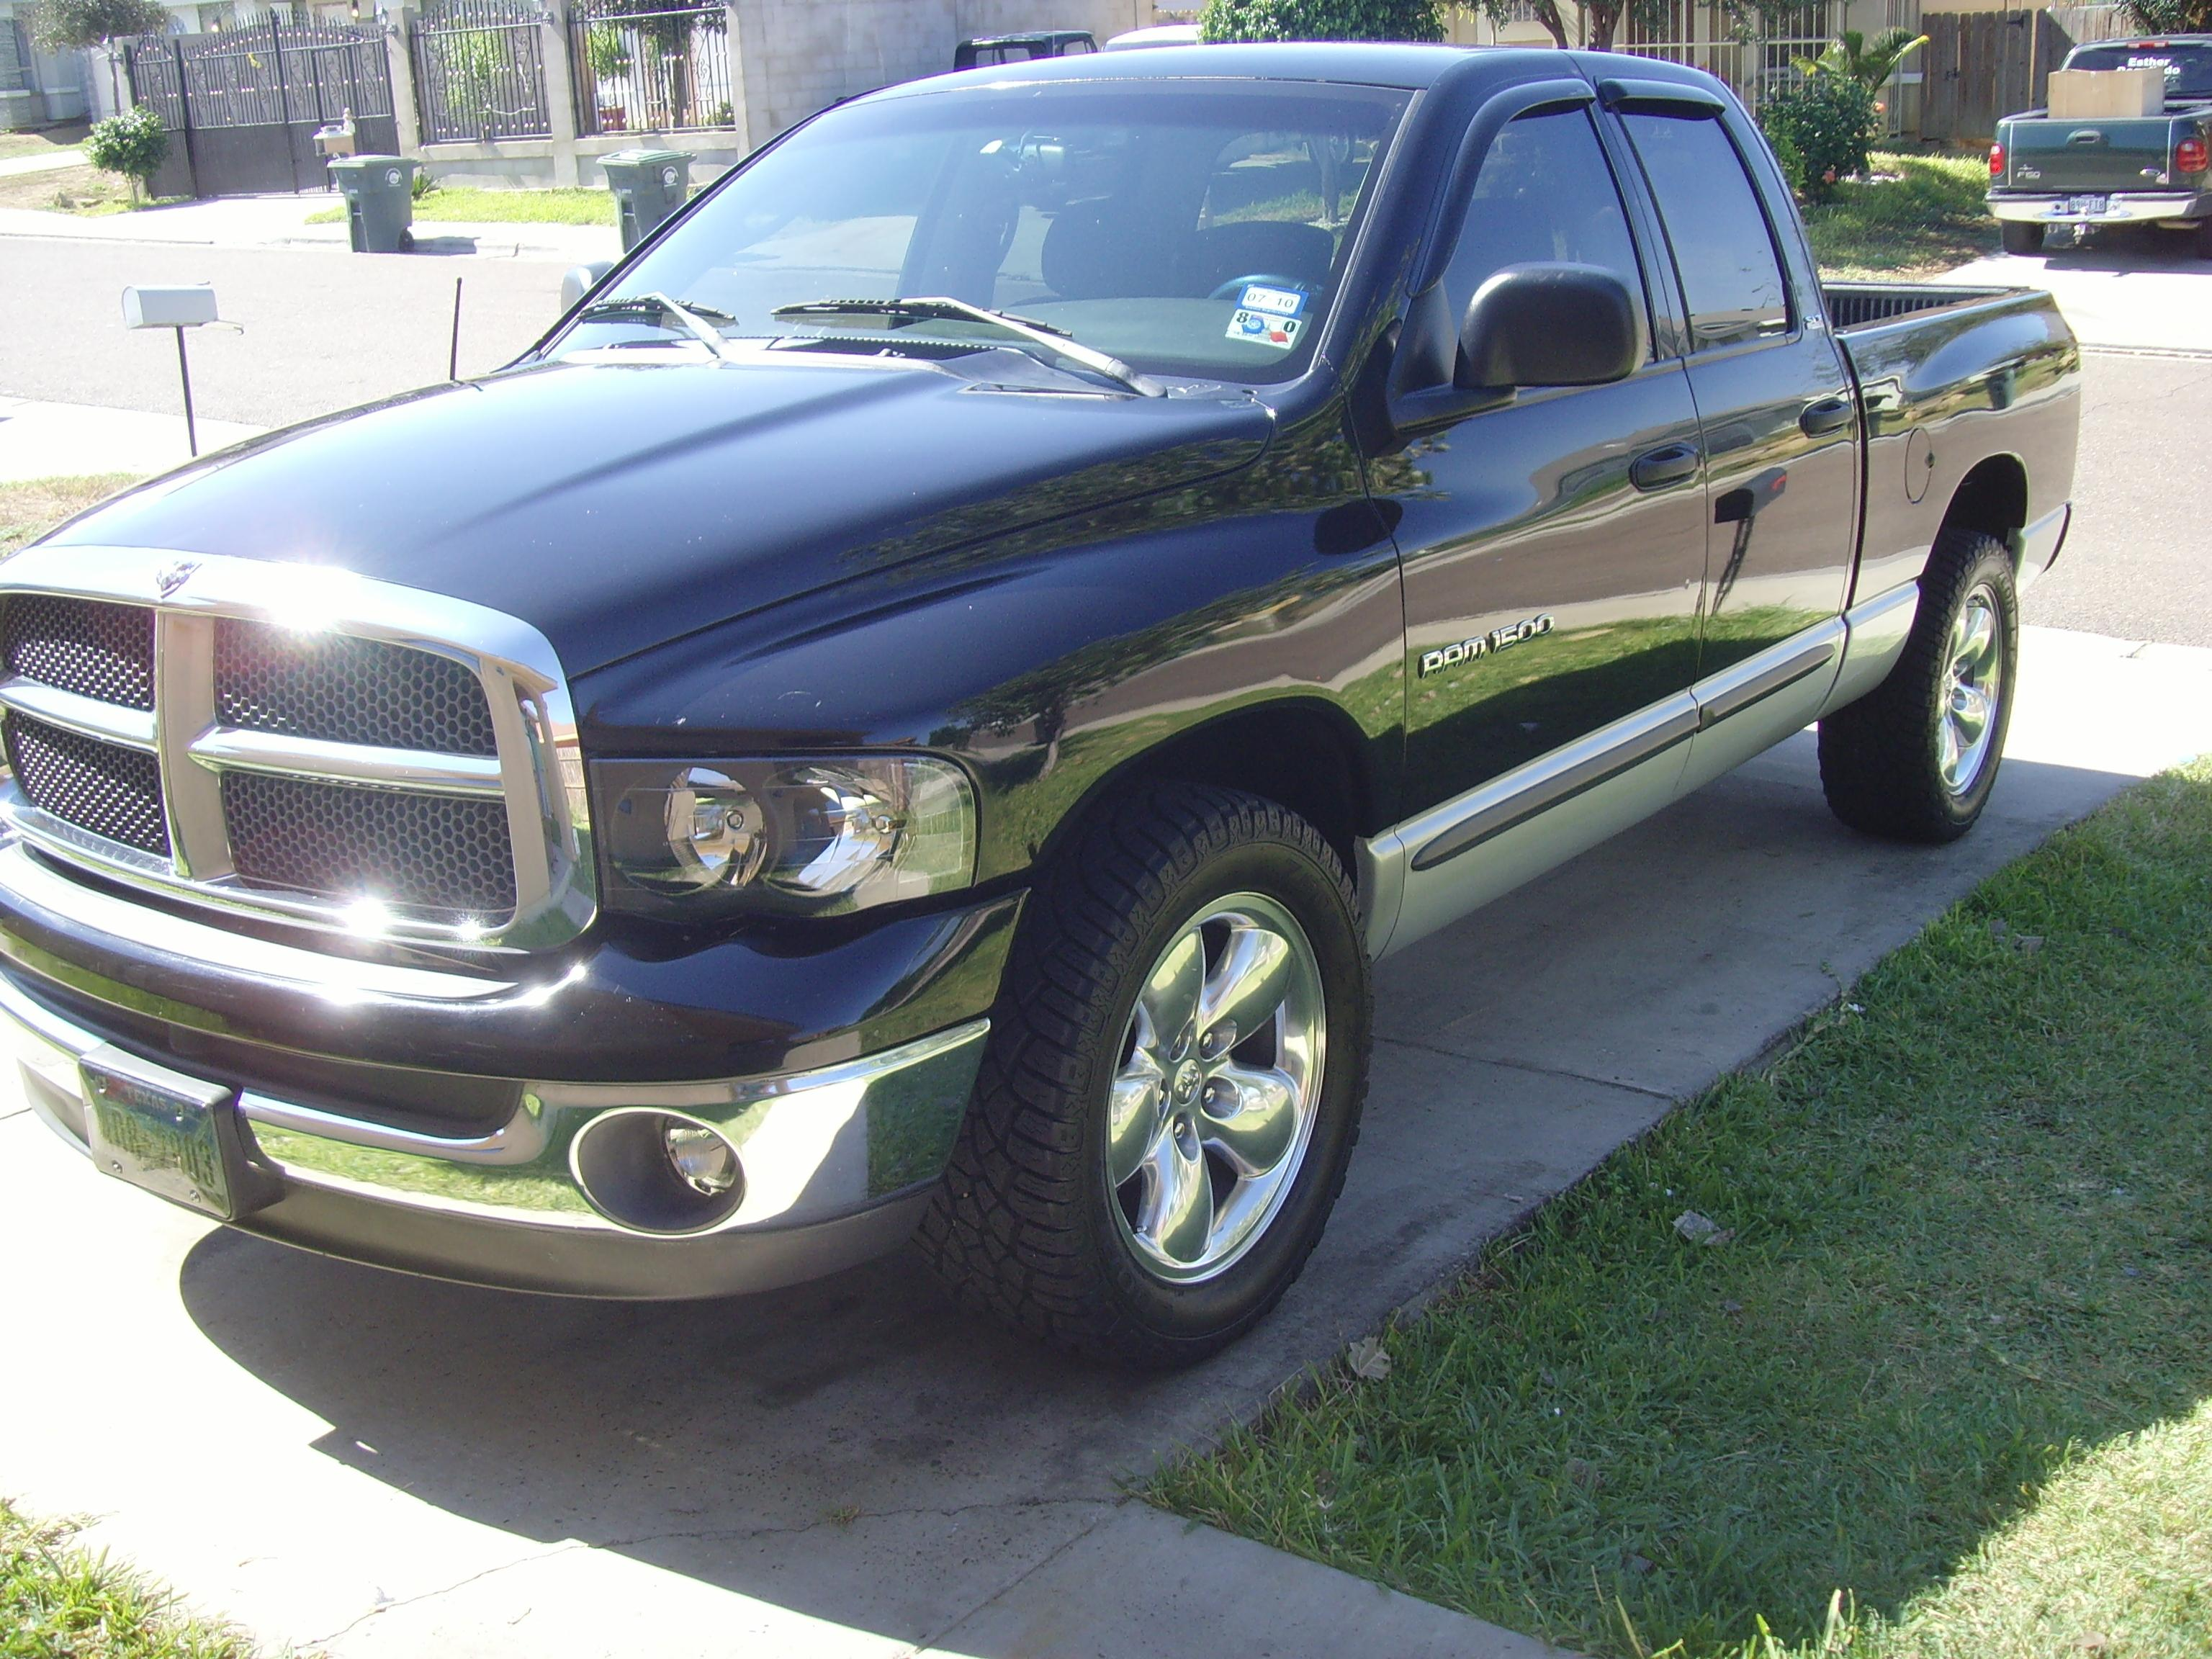 ricrub 2002 dodge ram 1500 regular cab specs photos modification info at cardomain. Black Bedroom Furniture Sets. Home Design Ideas